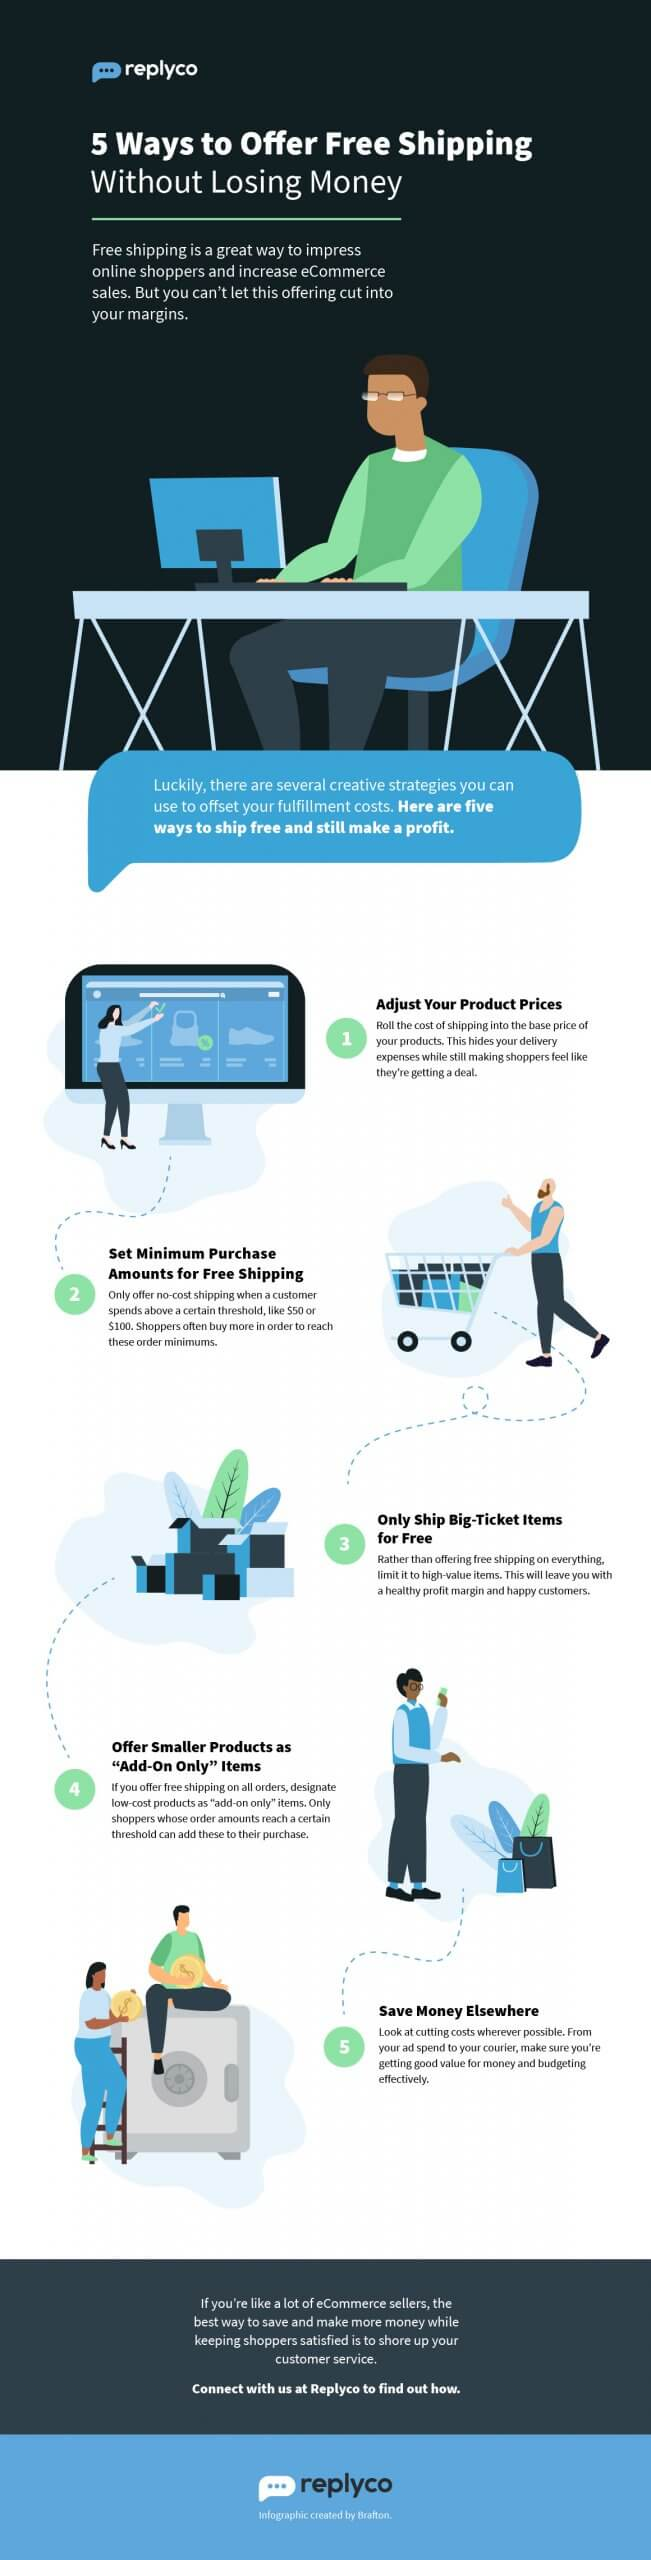 5 Ways to Offer Free Shipping Without Losing Money - Created by Brafton for Replyco Helpdesk Software for eCommerce